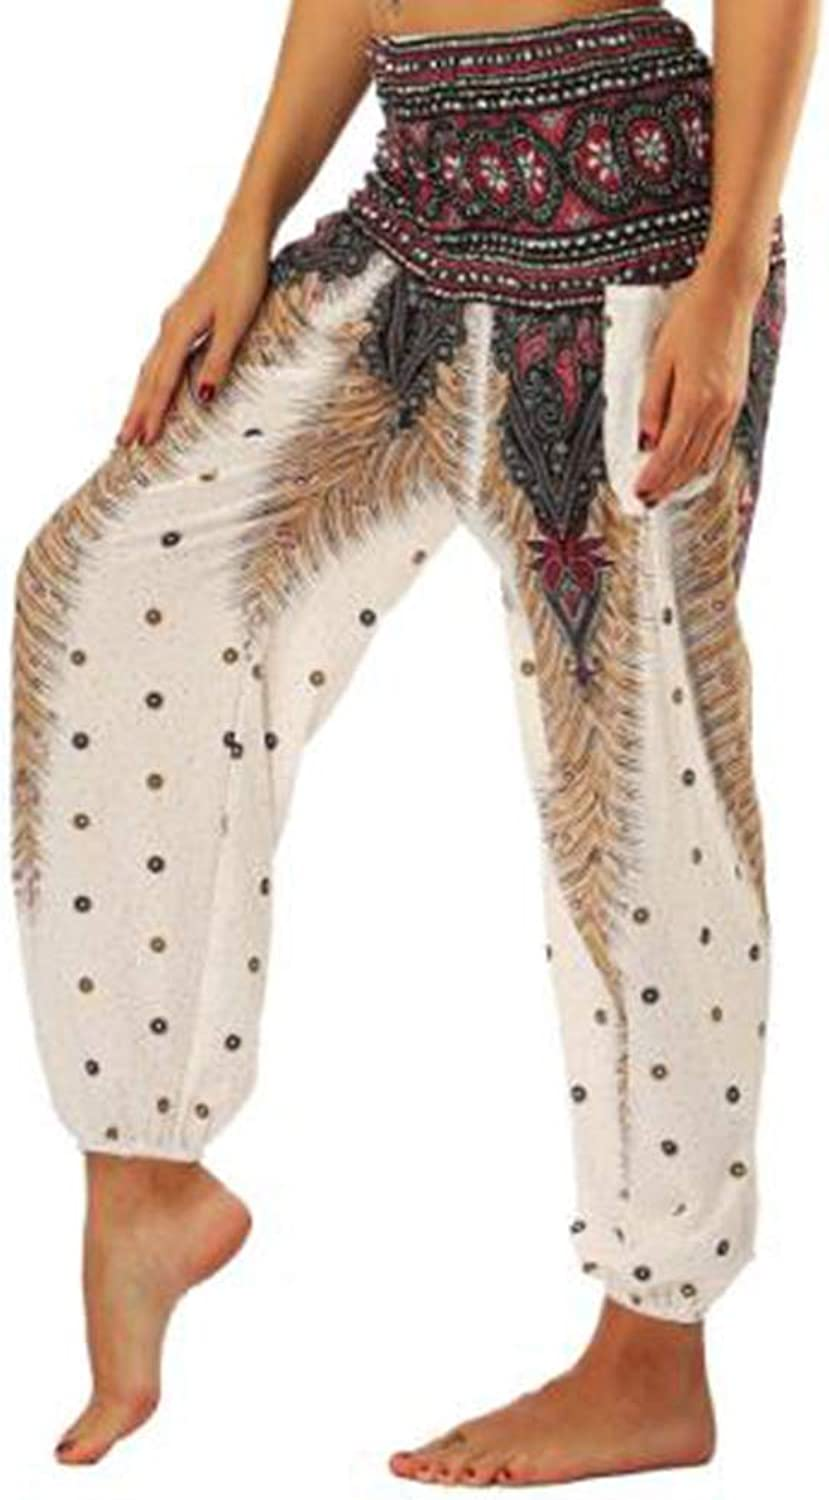 Huayue Yoga Pants Feather Digital Printed Bloomer Pants Bohemia Beach Pants for Fitness Printed Yoga Pants